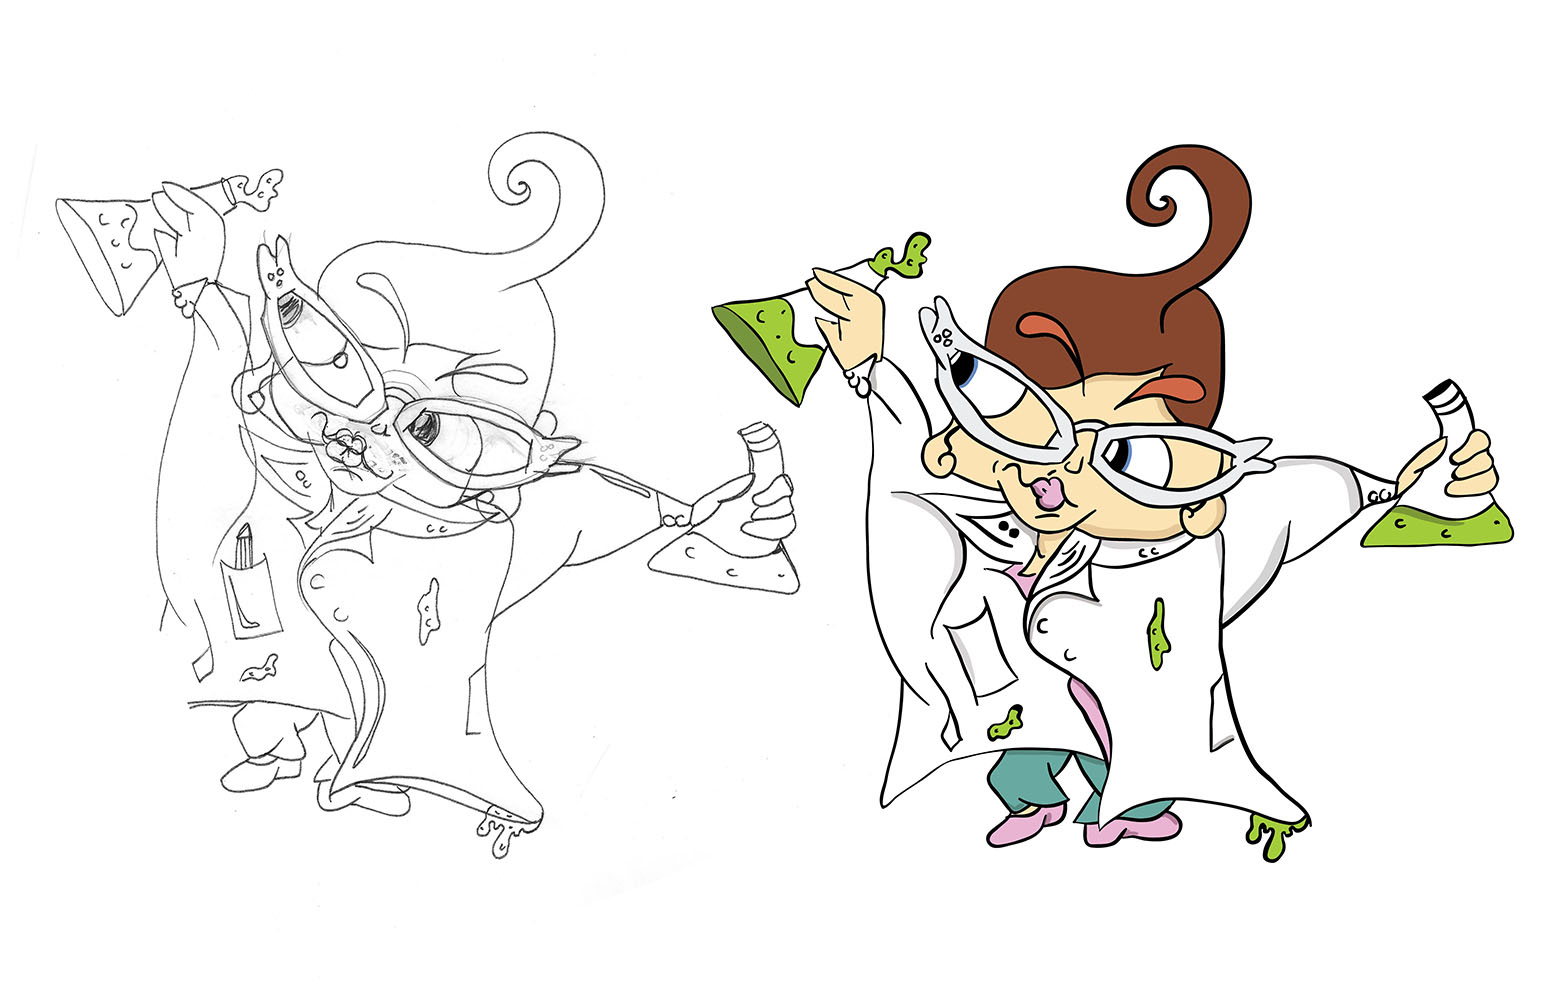 LIL THE CHEMIST {click to enlarge}